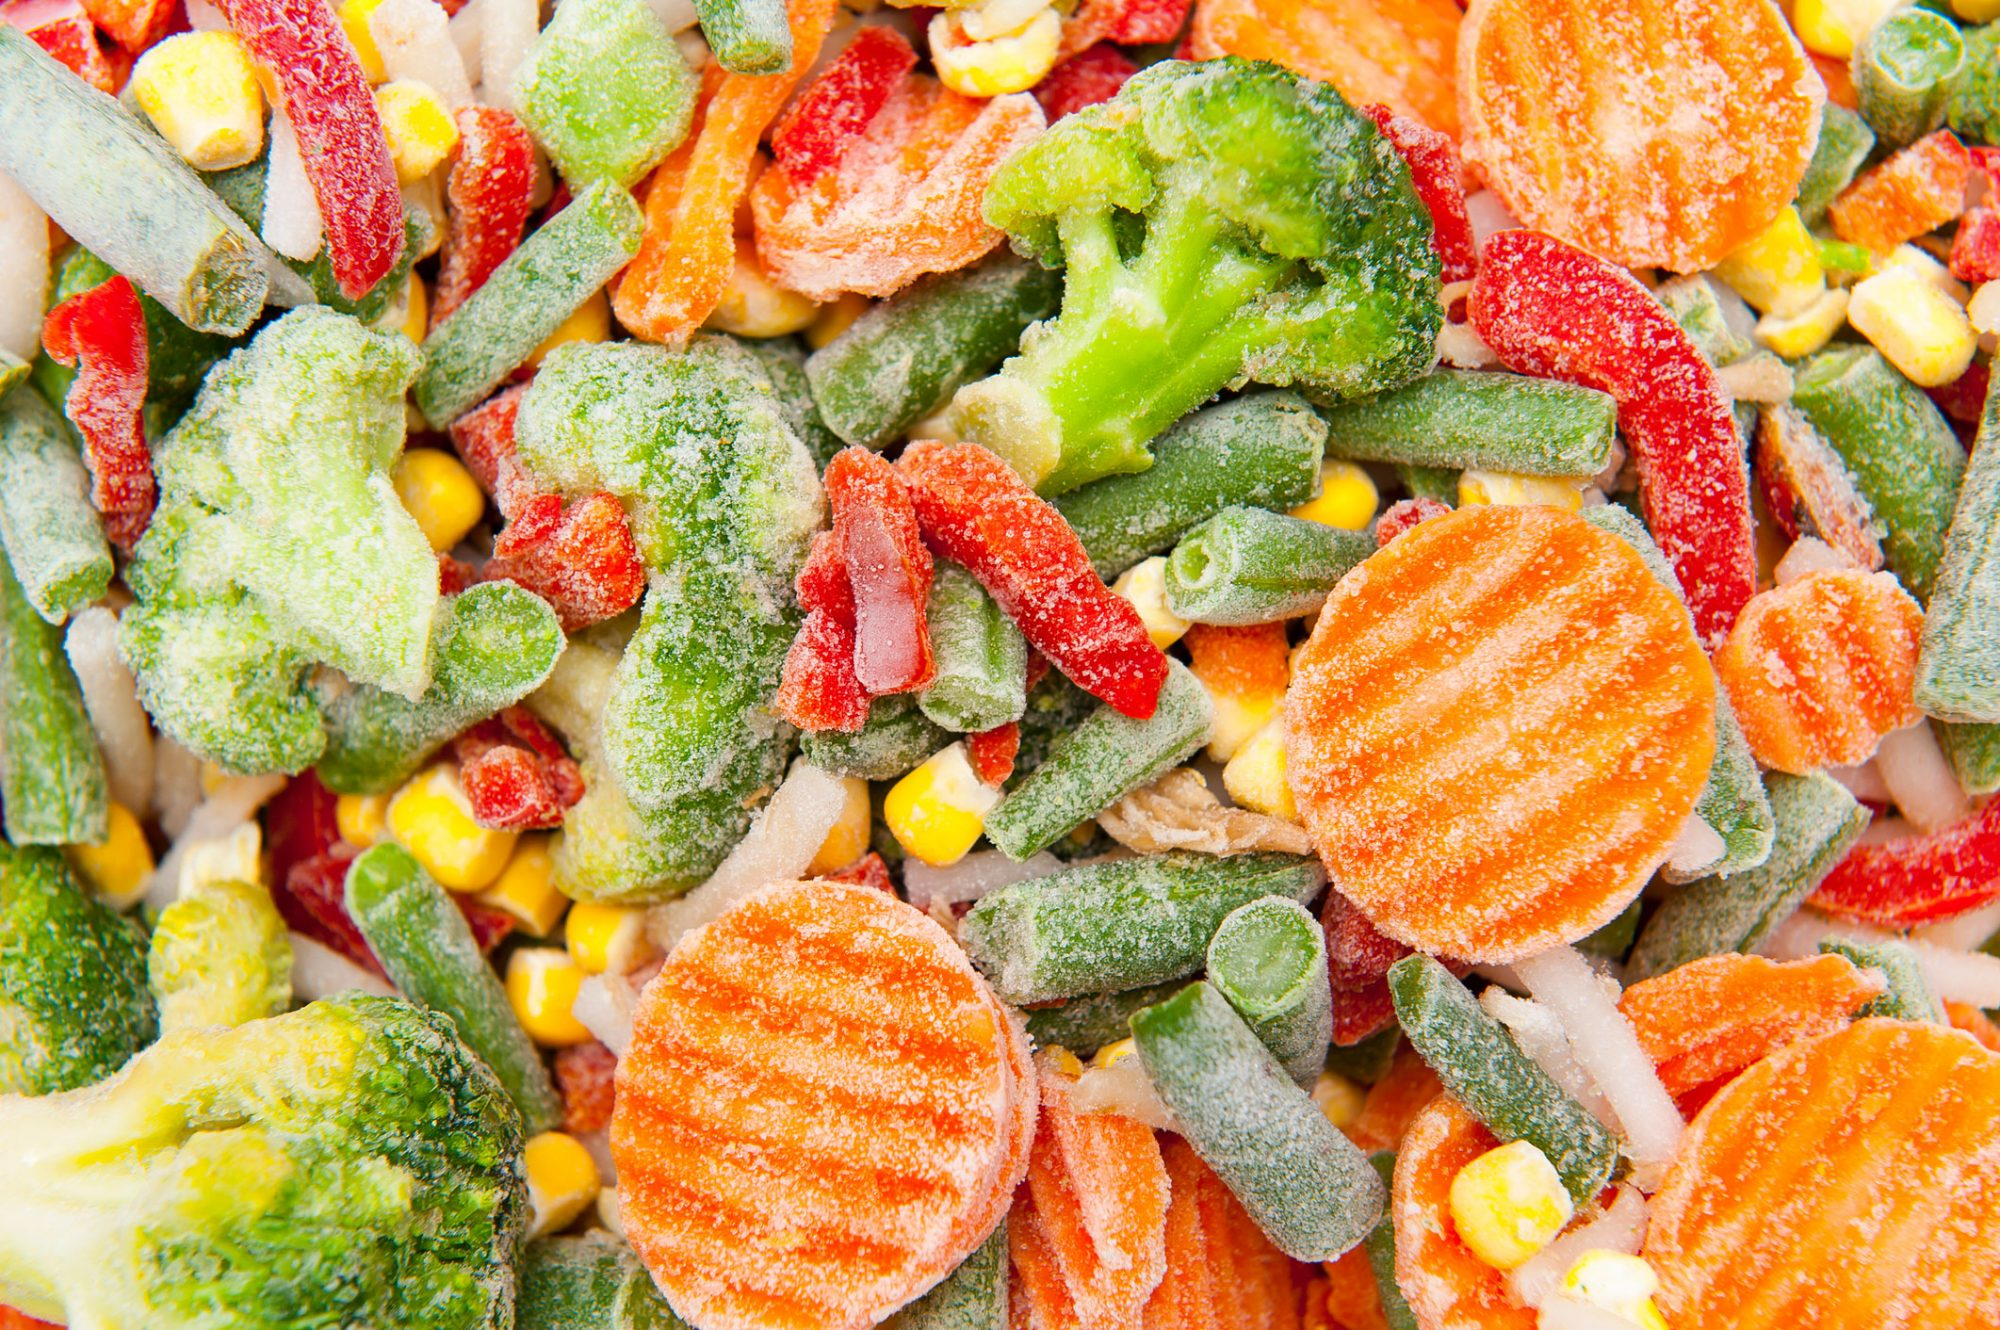 RX_1703_Frozen Mixed Vegetables.jpg